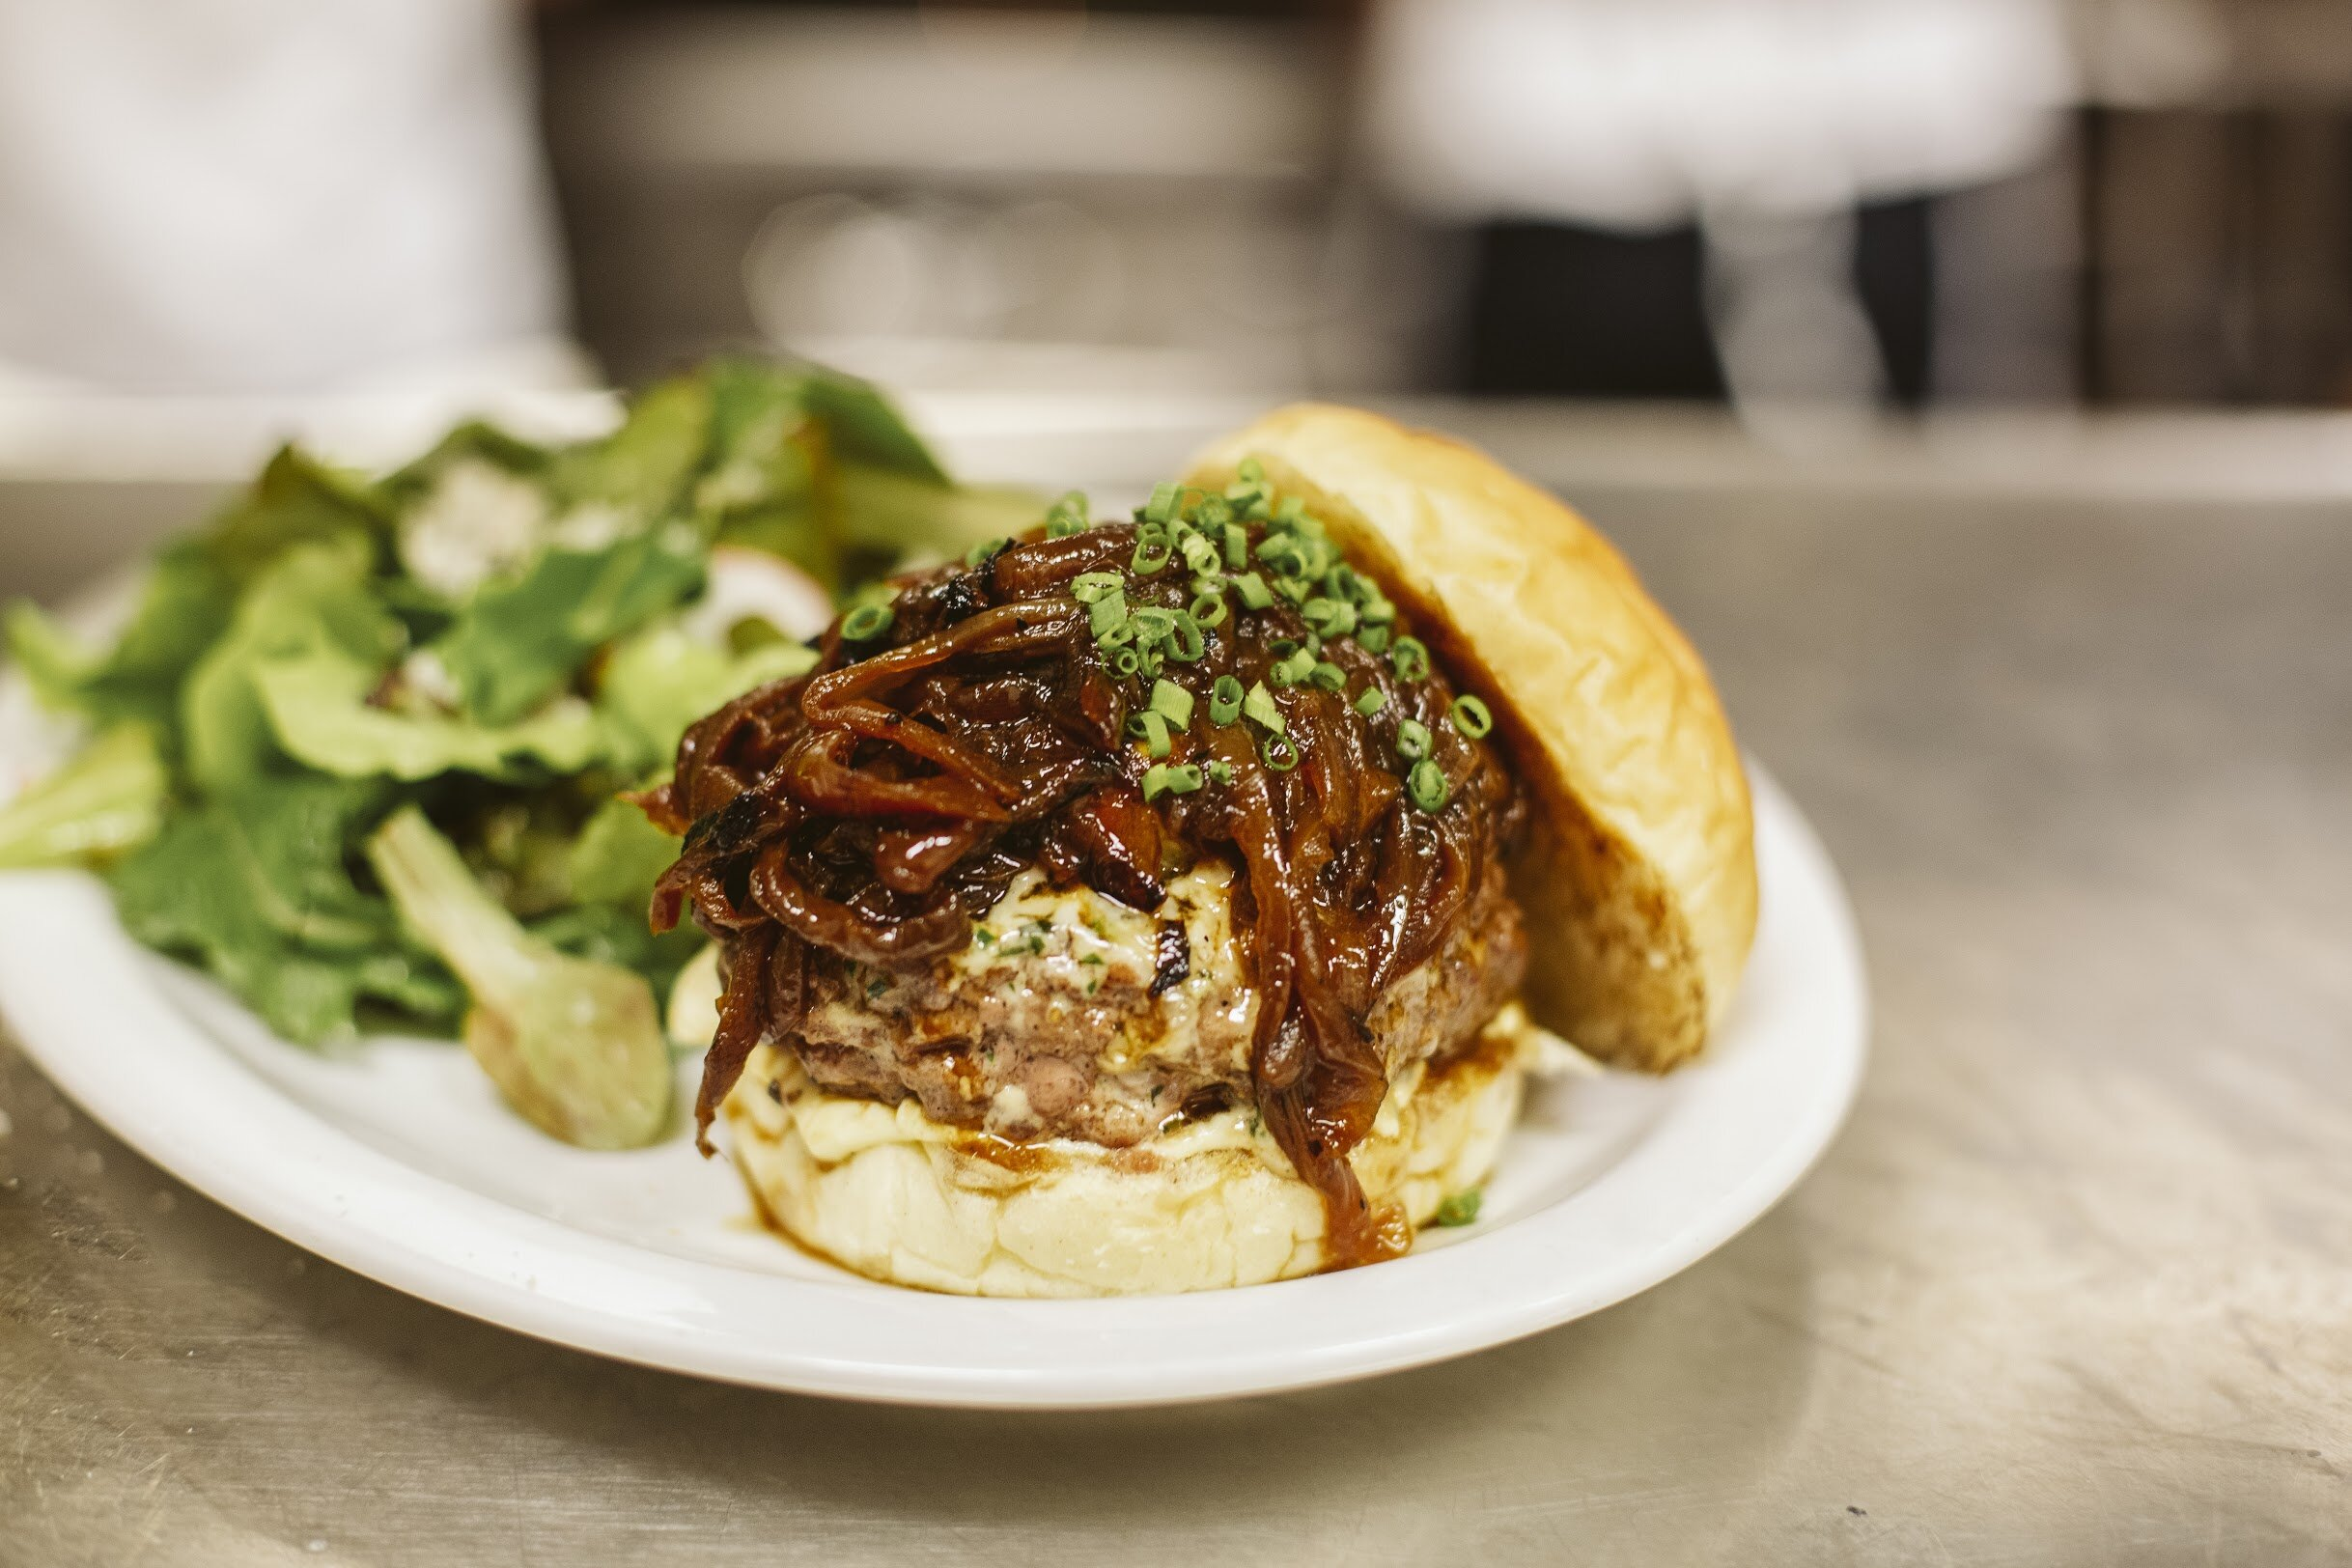 - The Graze Burger from Graze is a Patty made with Ground Short Ribs, Brisket and Bacon, then topped with Caramelized Onion-Cabernet Jus, Hook's Swiss Cheese and Emmental Compound Butter.Photo from @krosalesphotography